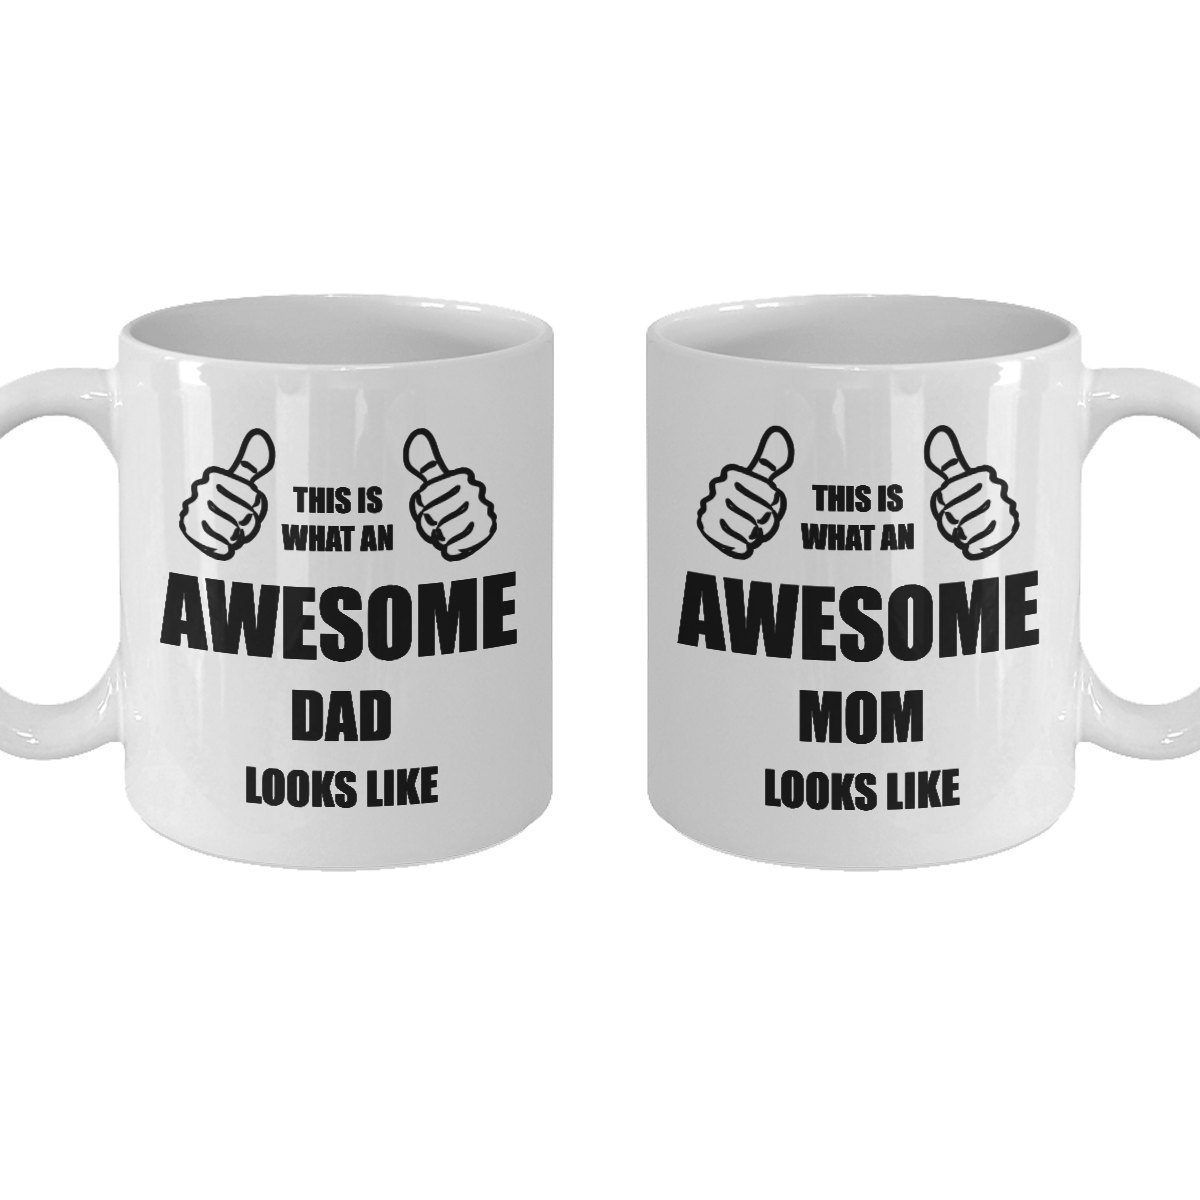 Personalized Coffee Mug Set Birthday Gift Gifts For Coffee Lover Him Her Men Wom